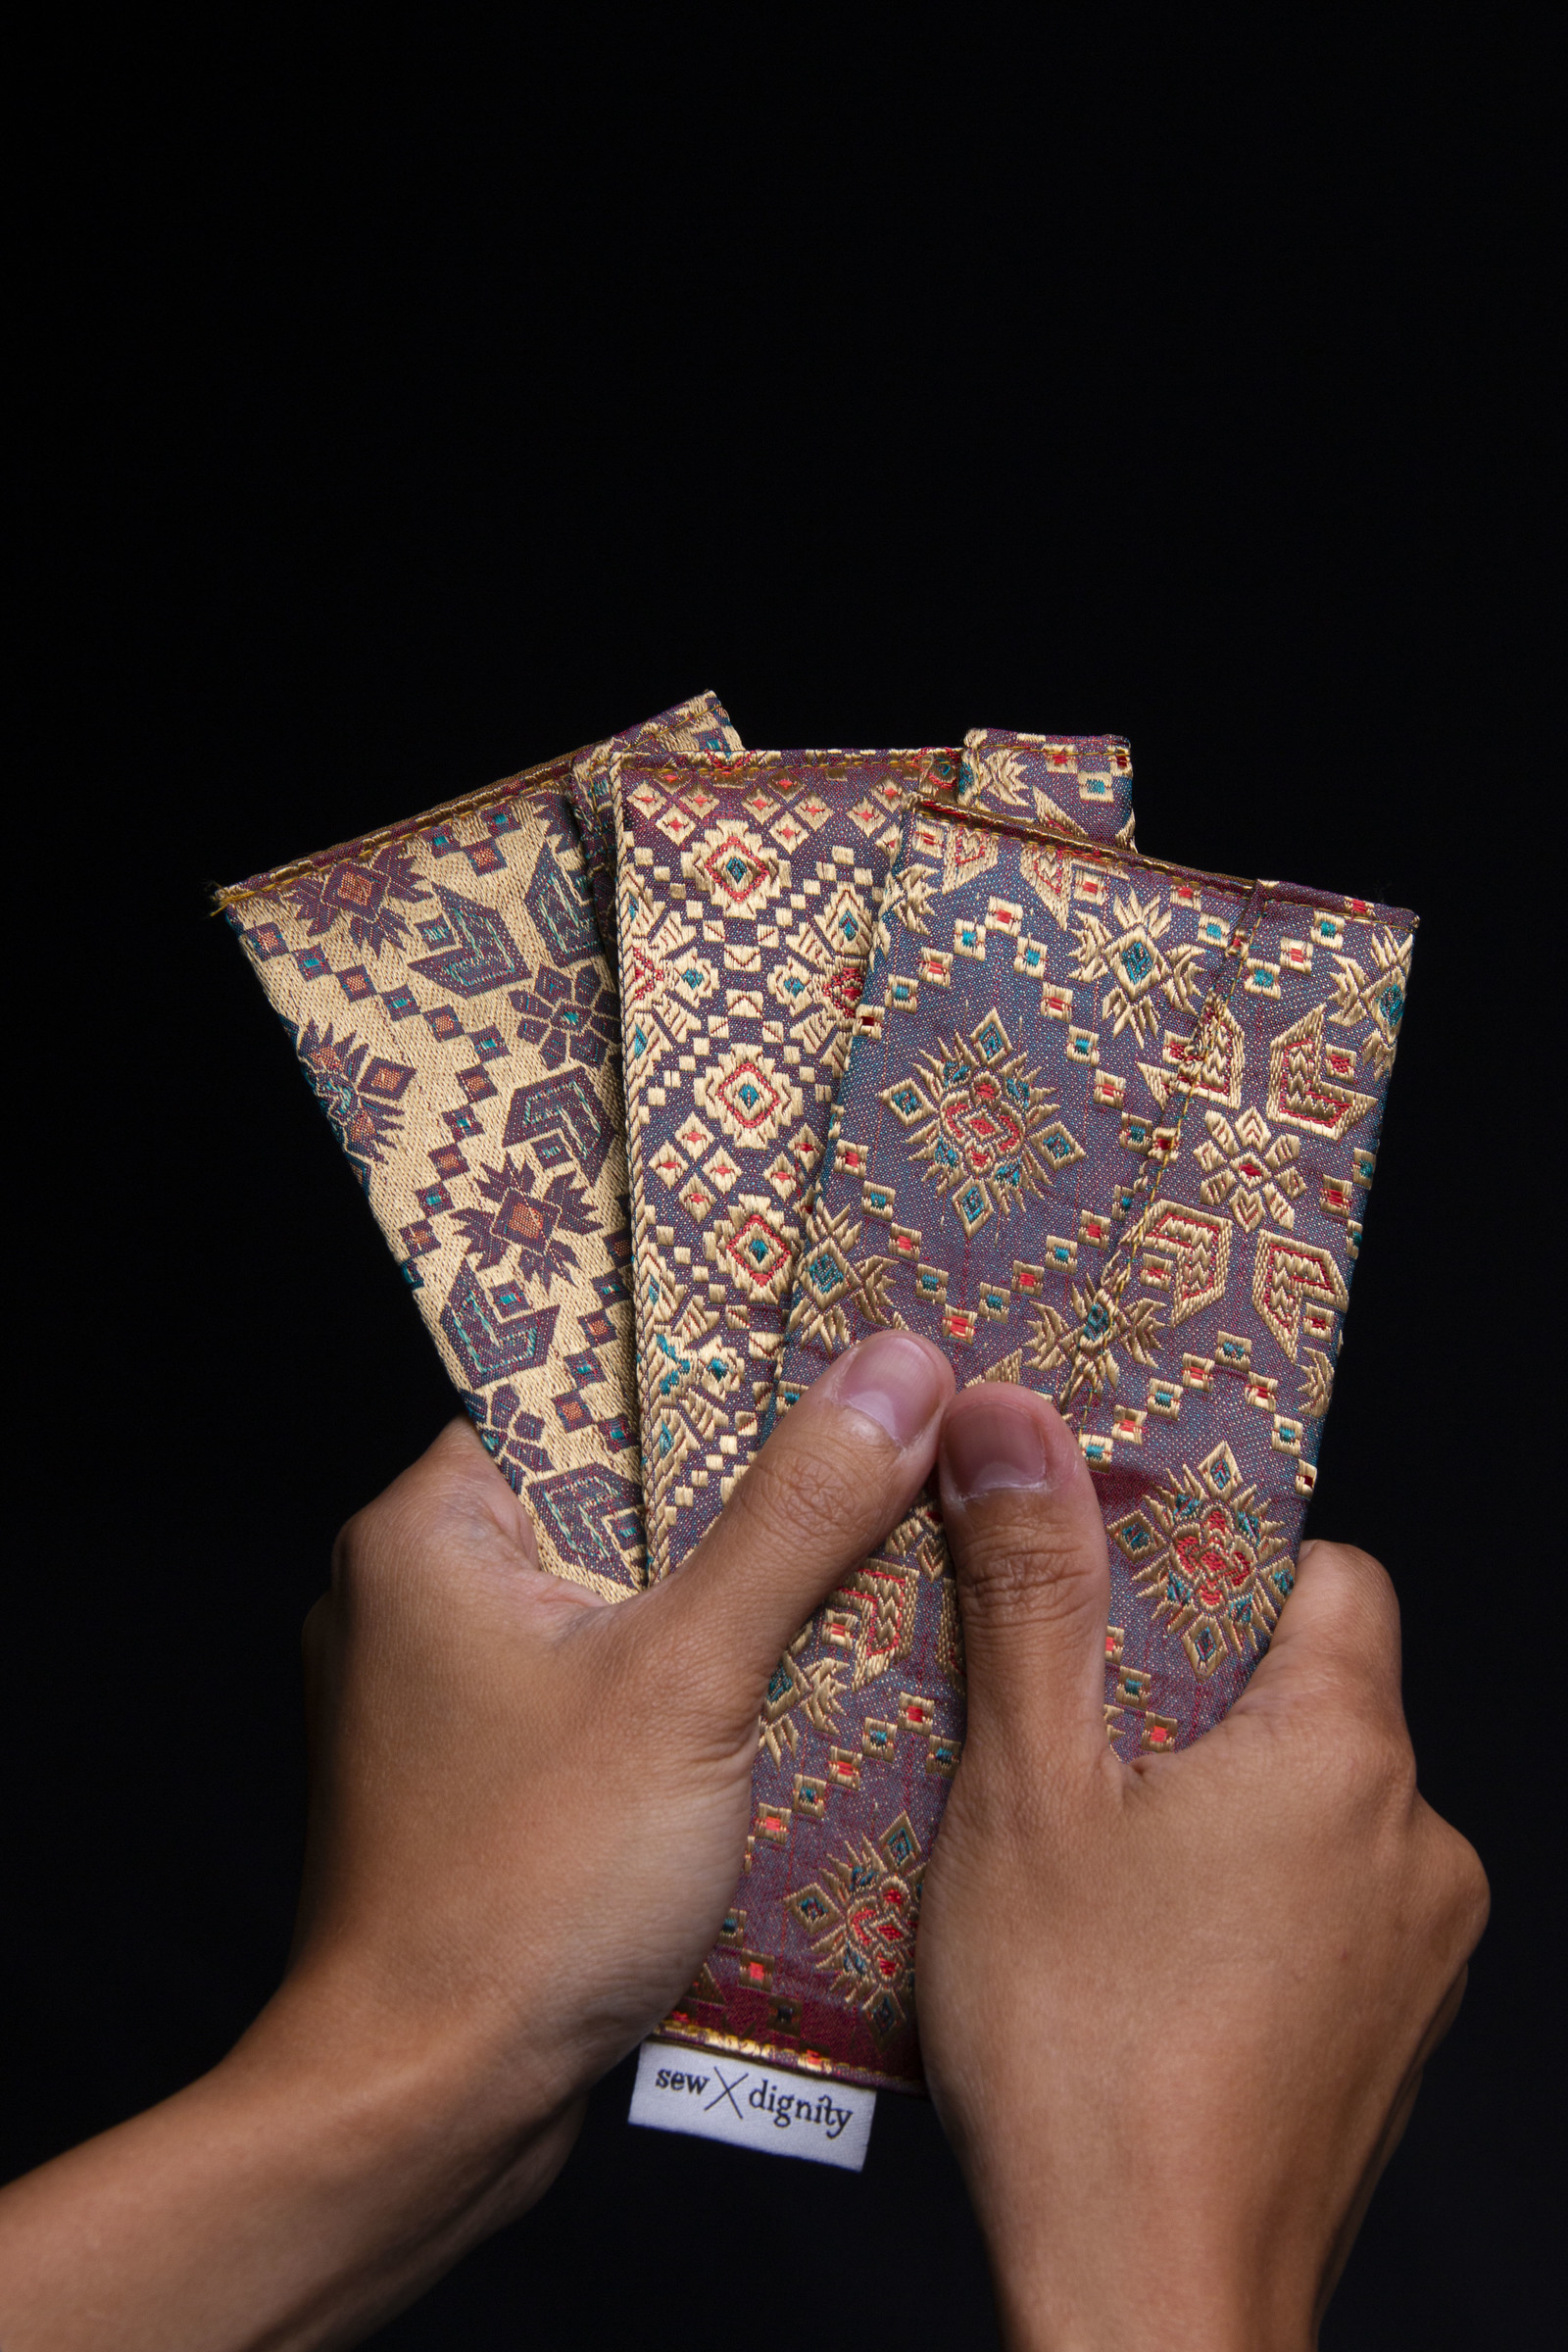 Dignity's Online Shop | Sampul Duit Raya for a Special Raya!